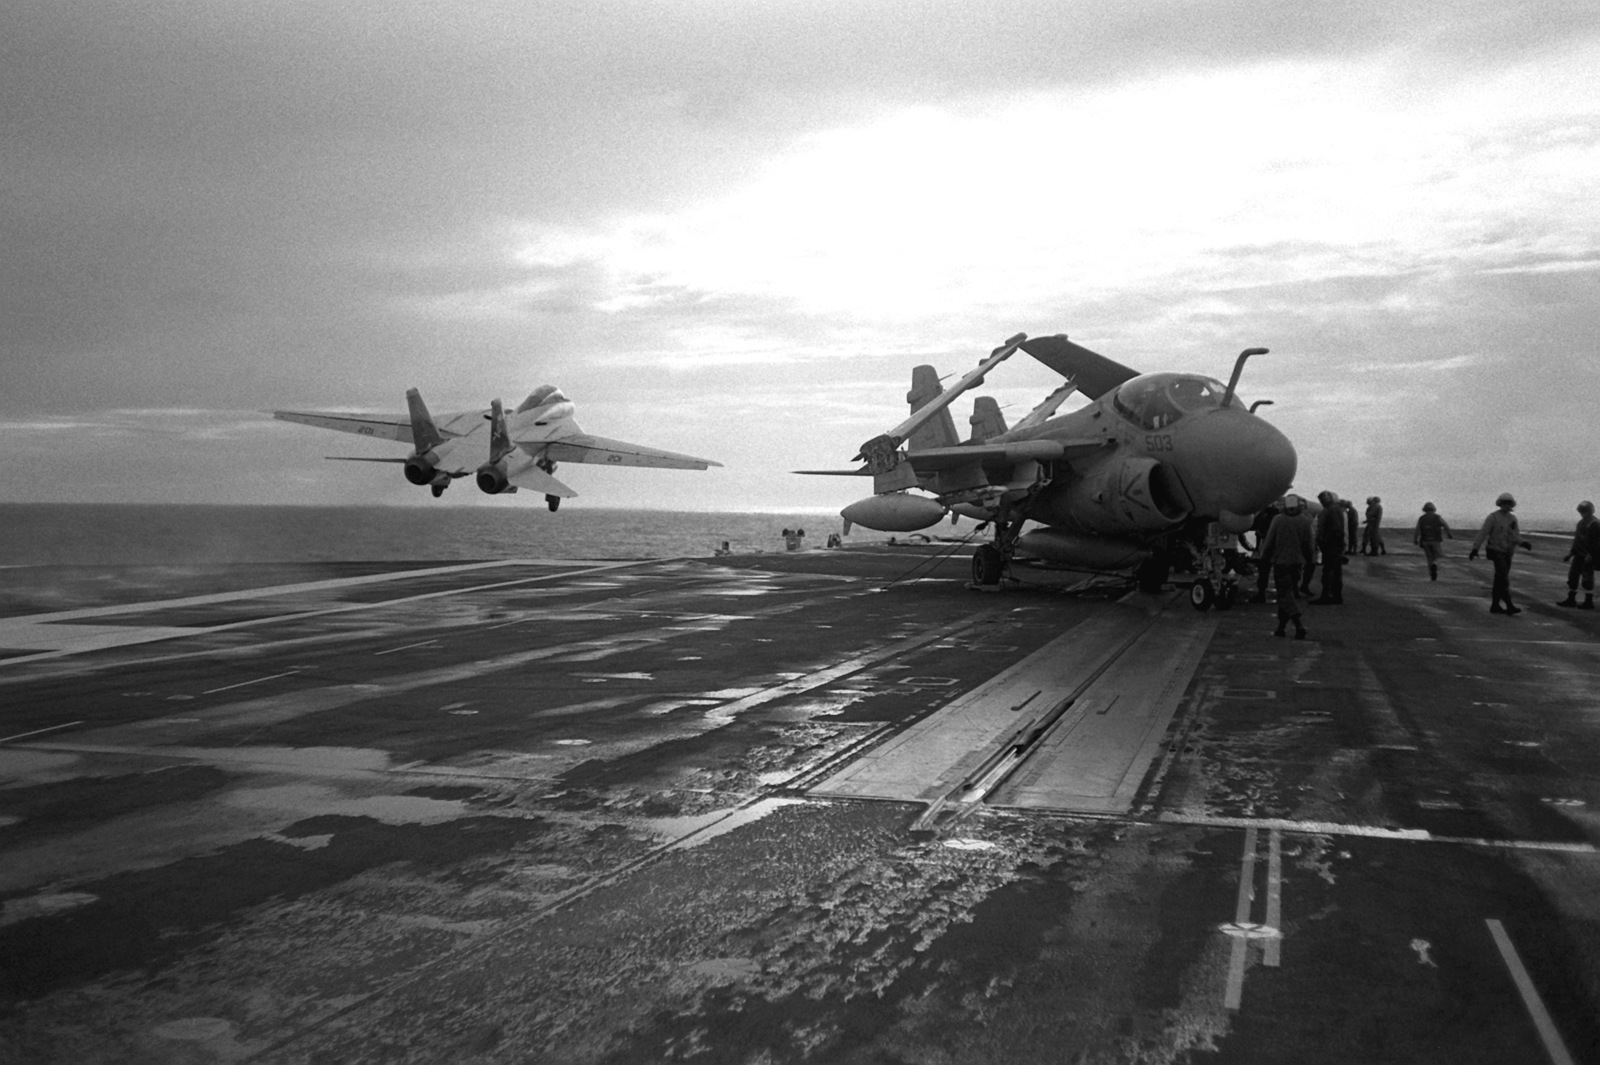 A Fighter Squadron 84 (VF-84) F-14A Tomcat aircraft, left, is launched from one of the waist catapults aboard the nuclear-powered aircraft carrier USS ABRAHAM LINCOLN (CVN-72). An attack squadron 65 (VA-65) A-6E Intruder aircraft is at right